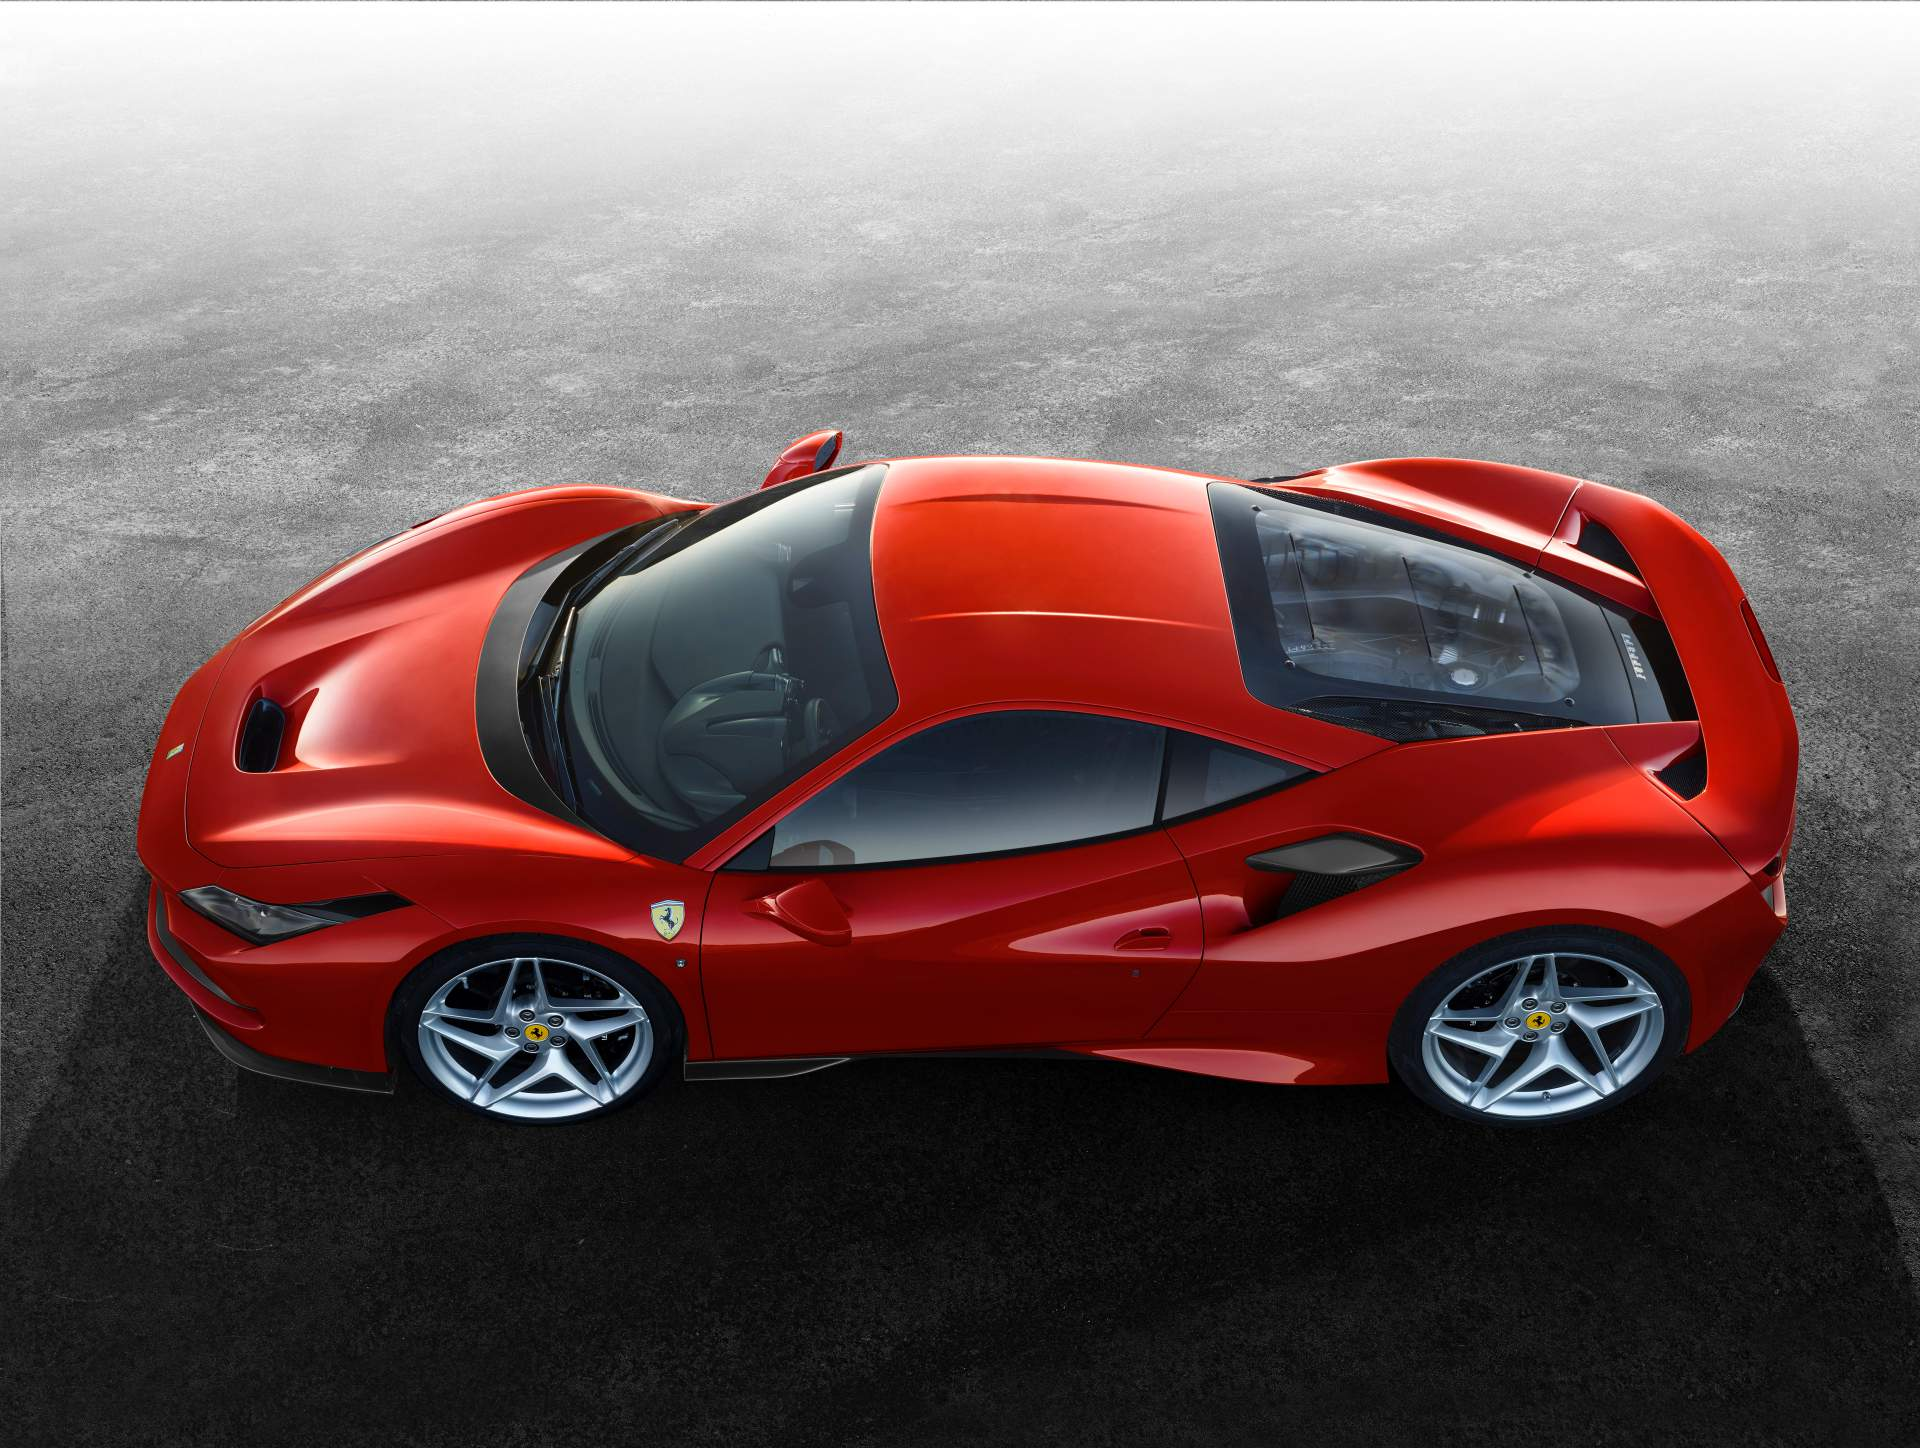 Ferrari F8 Tributo: New V8 model revealed as 488 GTB replacement